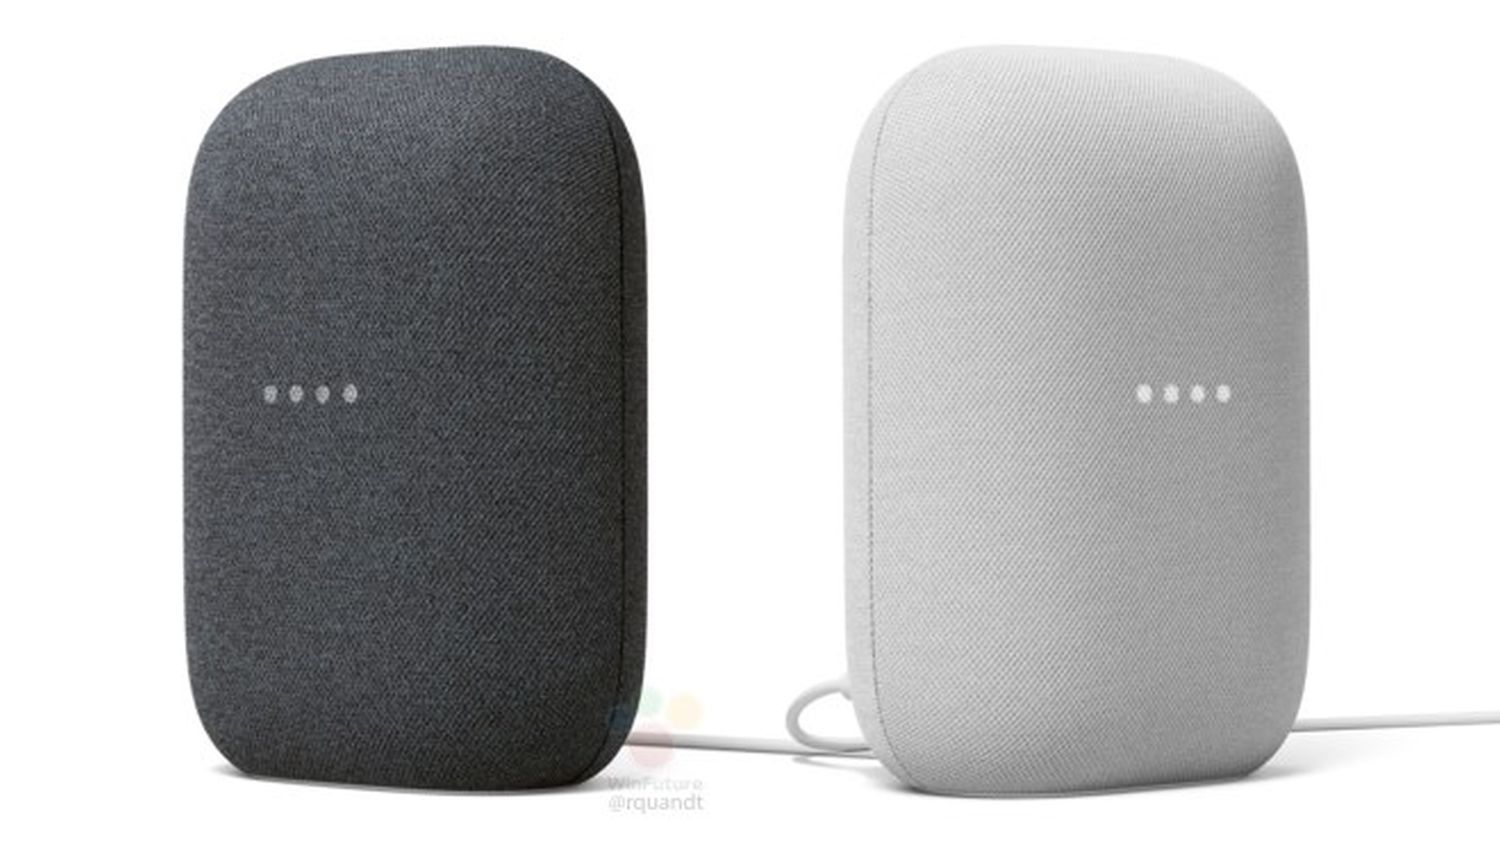 nest audio smart speaker duo